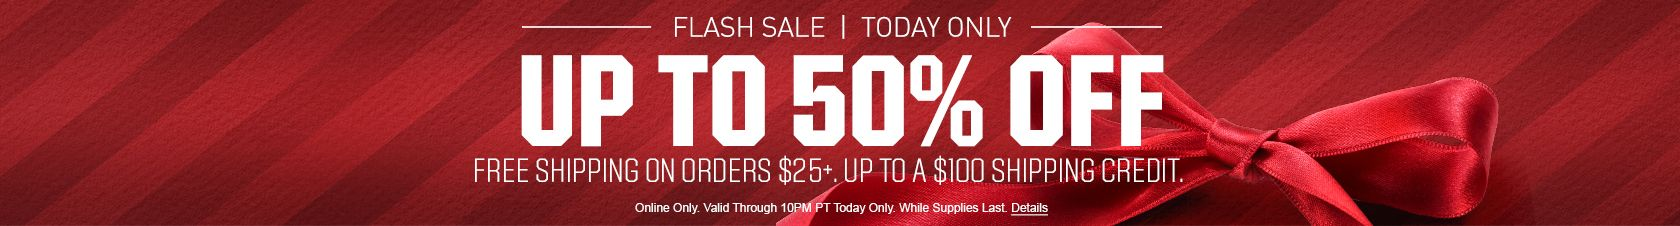 Today Only - Up to 50% Off - Free Shipping On Orders of $25+ | Up to a $100 Shipping Credit